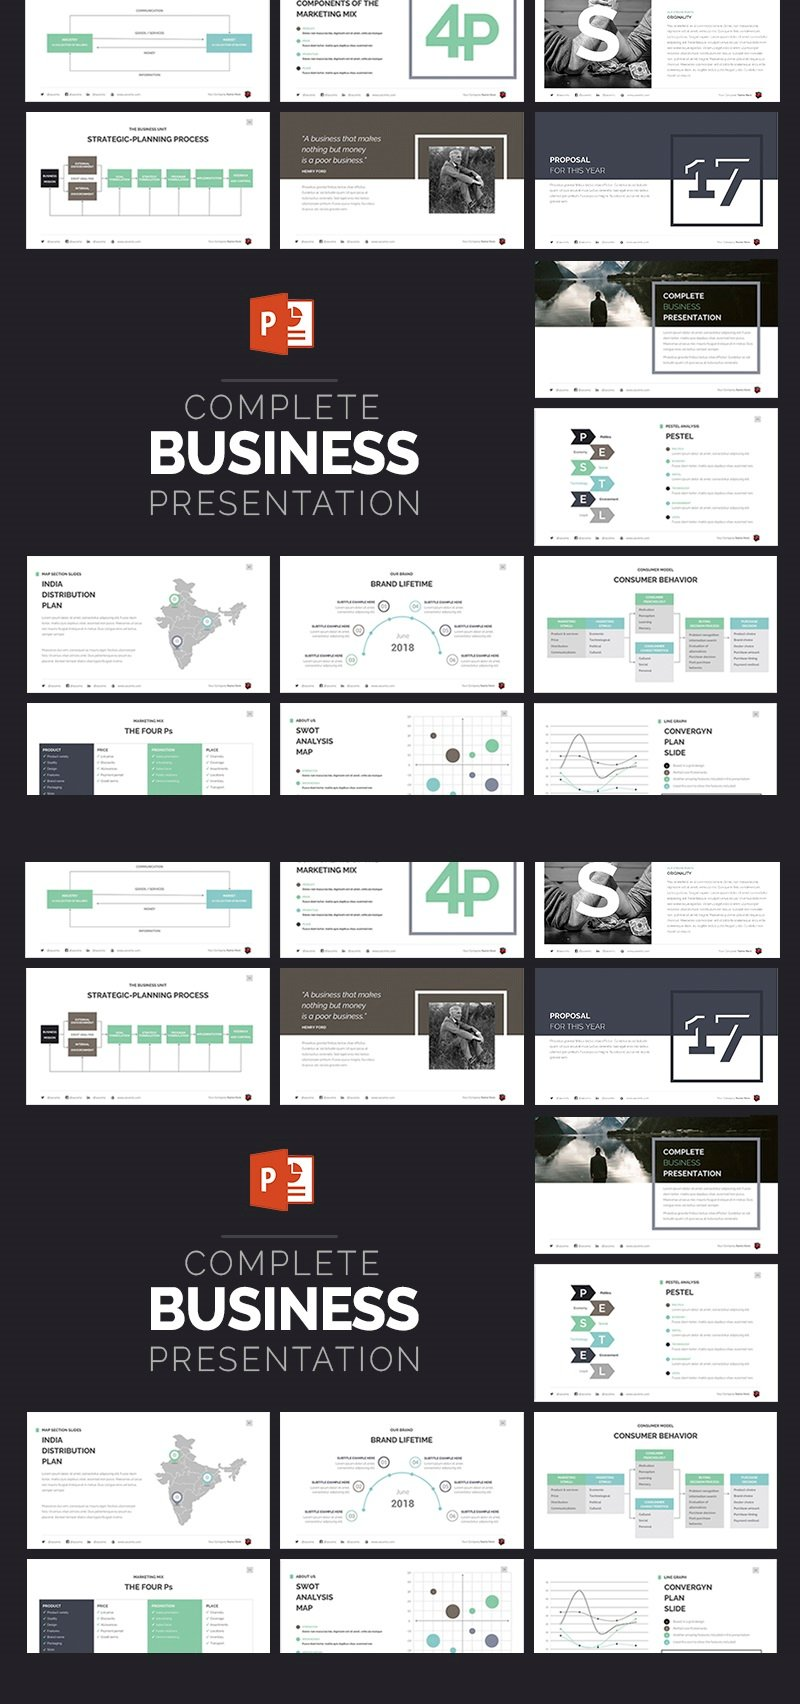 Complete Business Presentation PowerPoint Template - screenshot